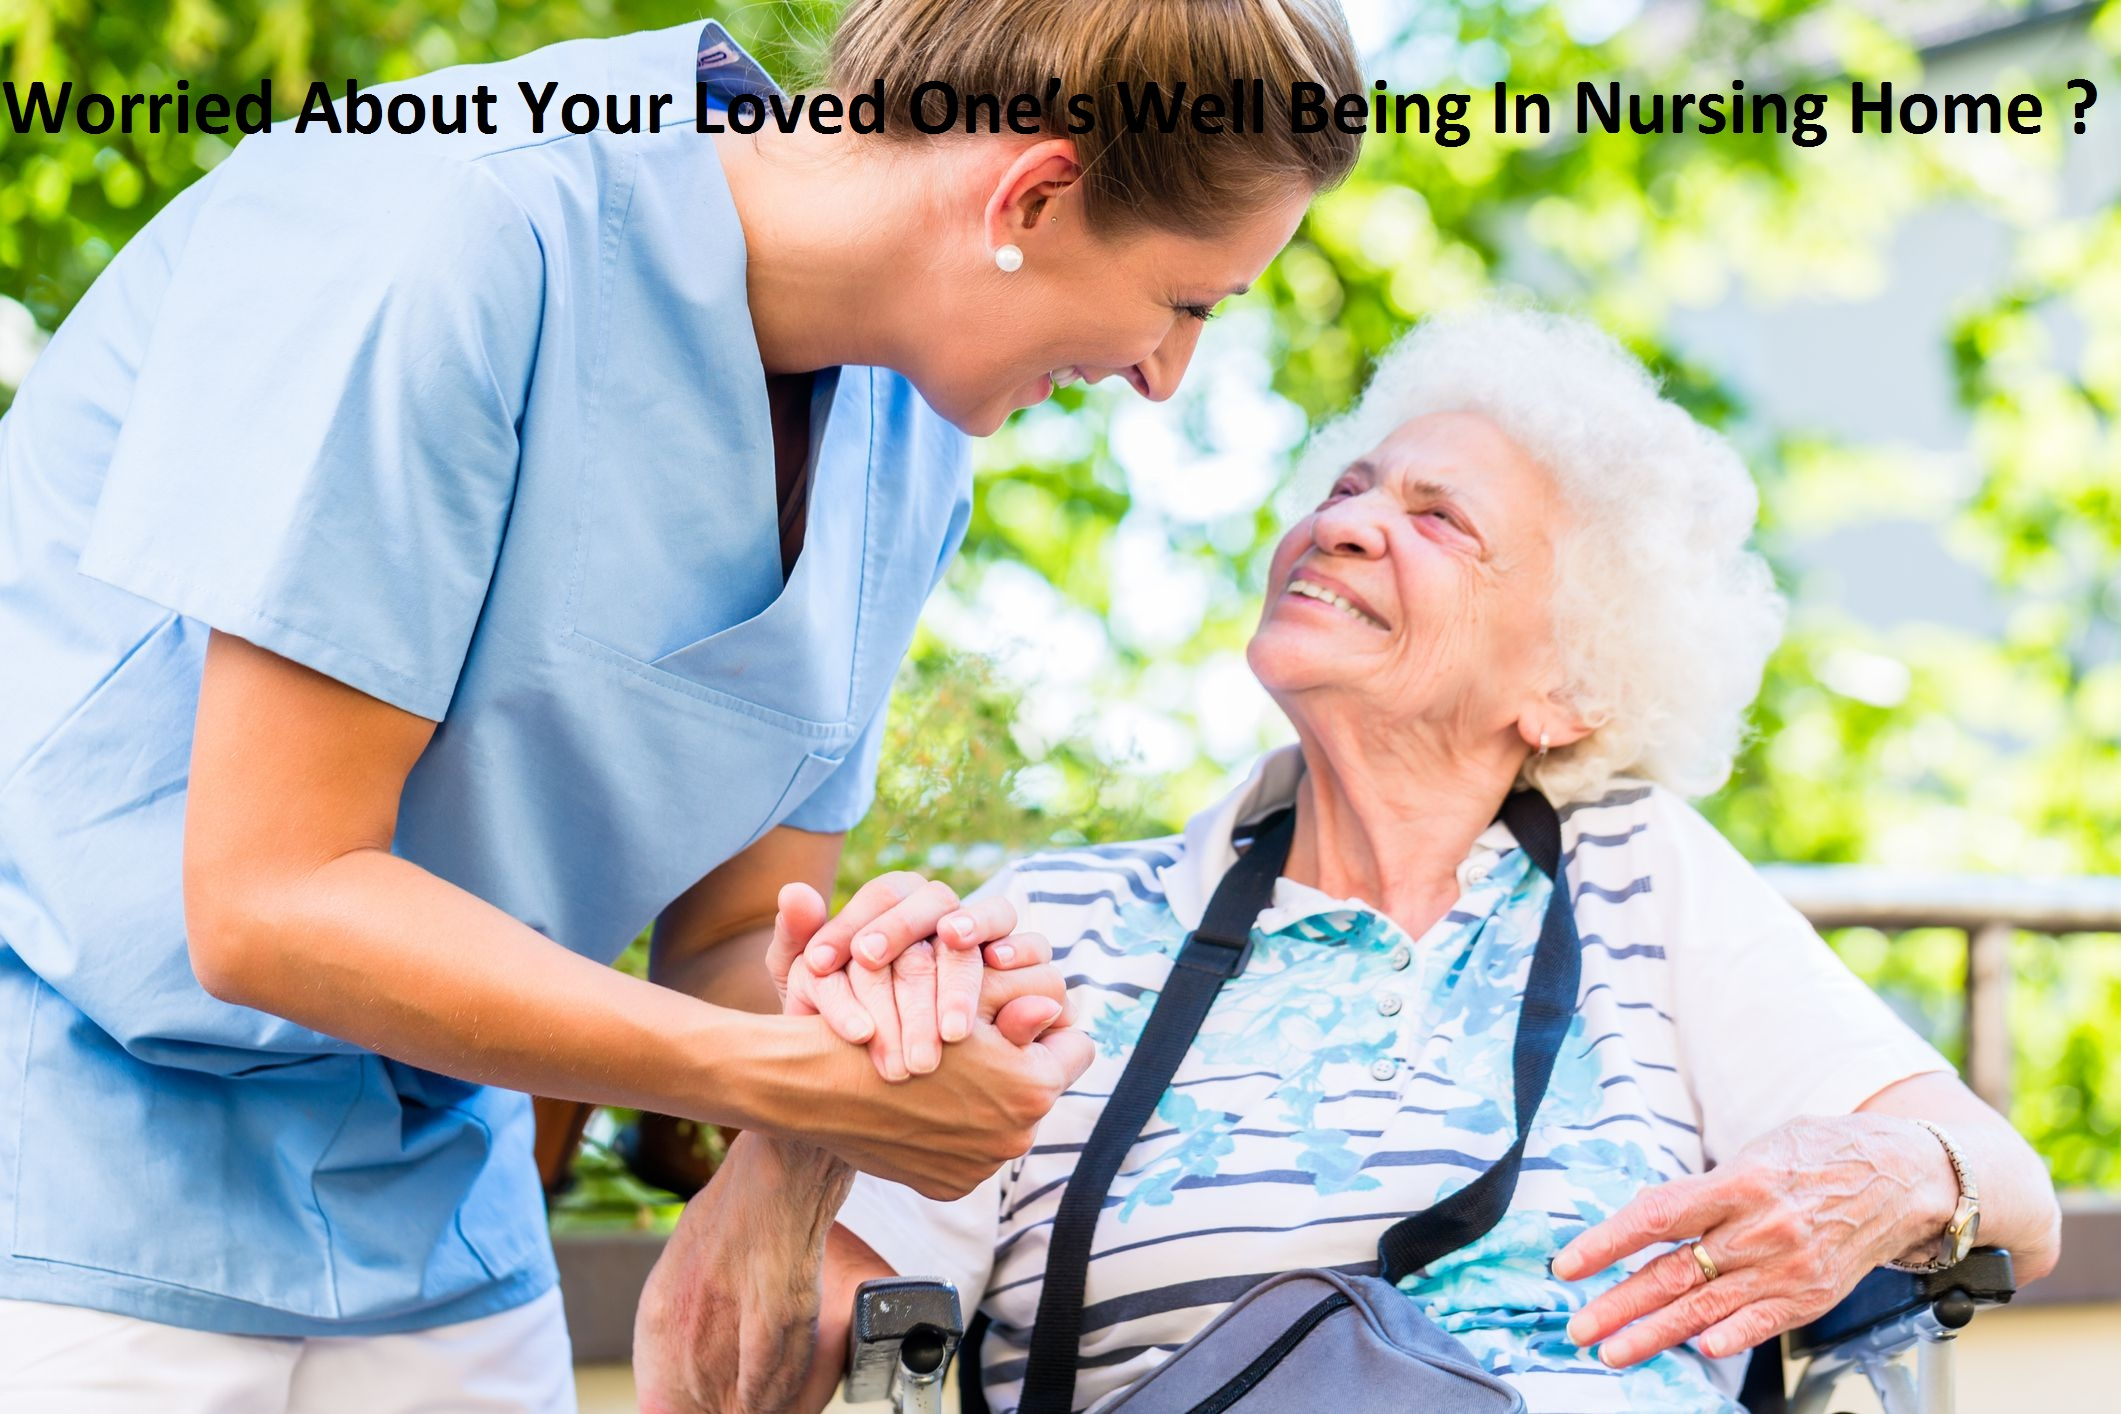 Worried About Your Loved One's Well Being In Nursing Home ?